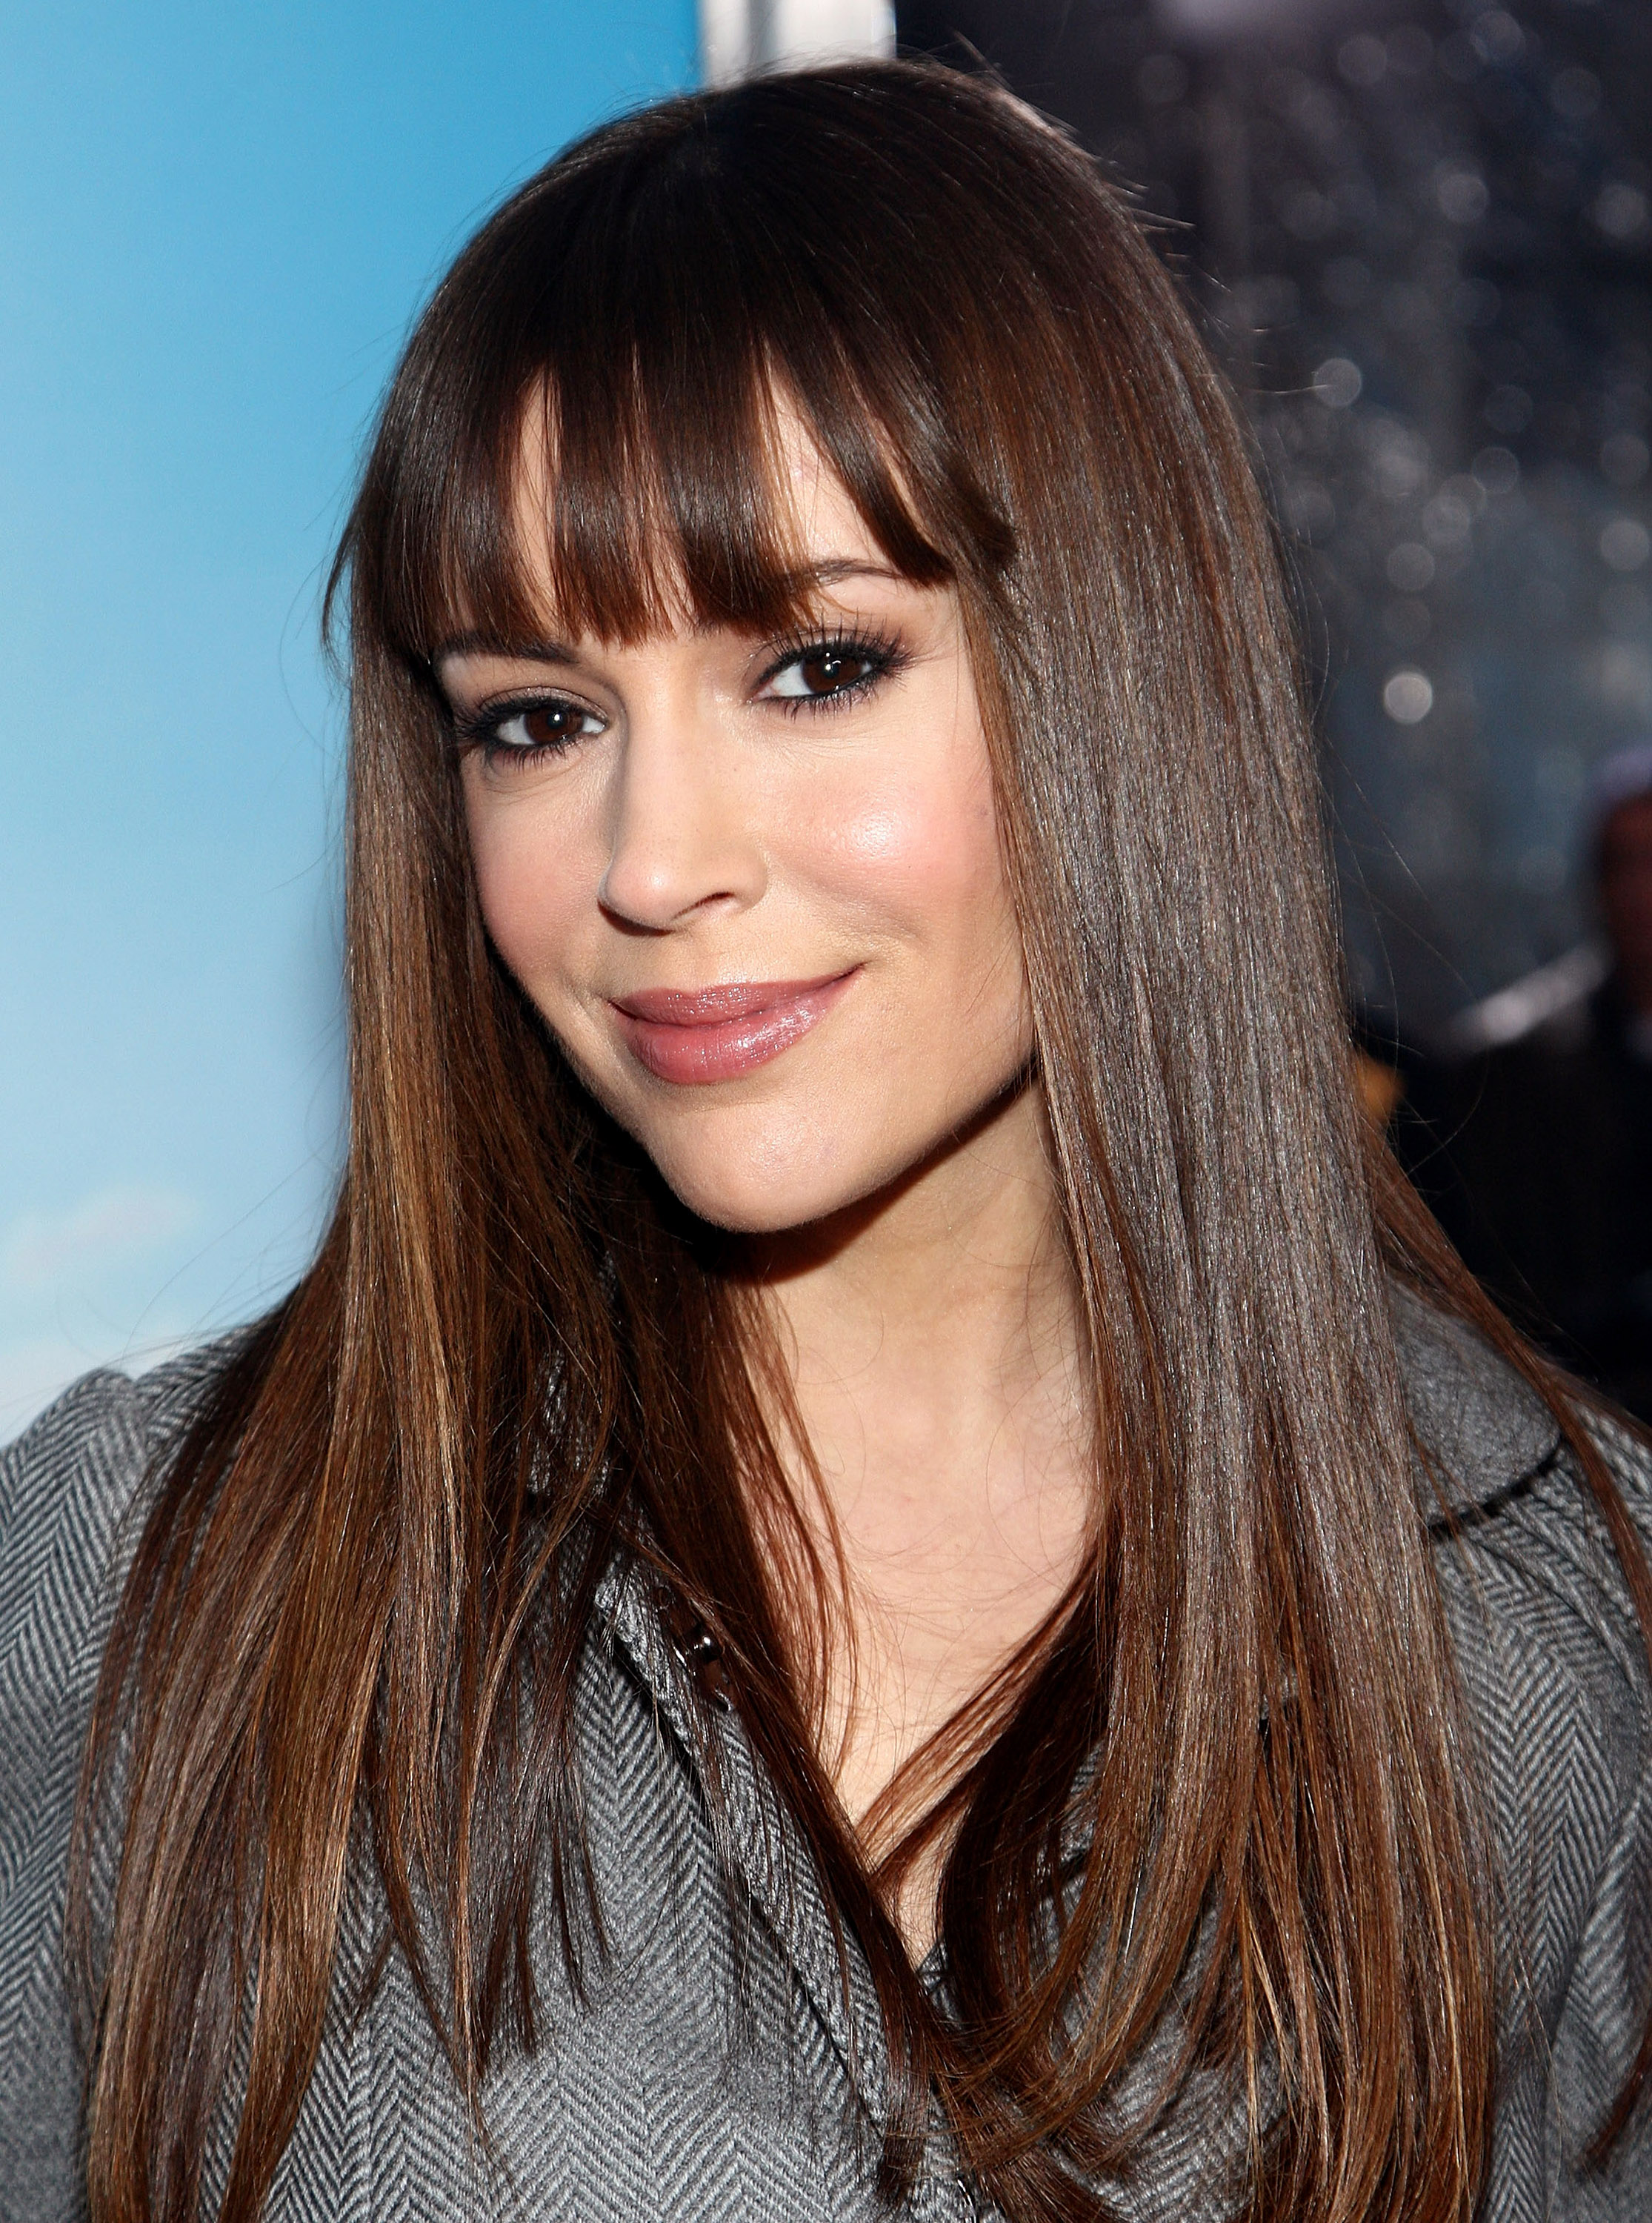 WP Images: Alyssa Milano, Post 15